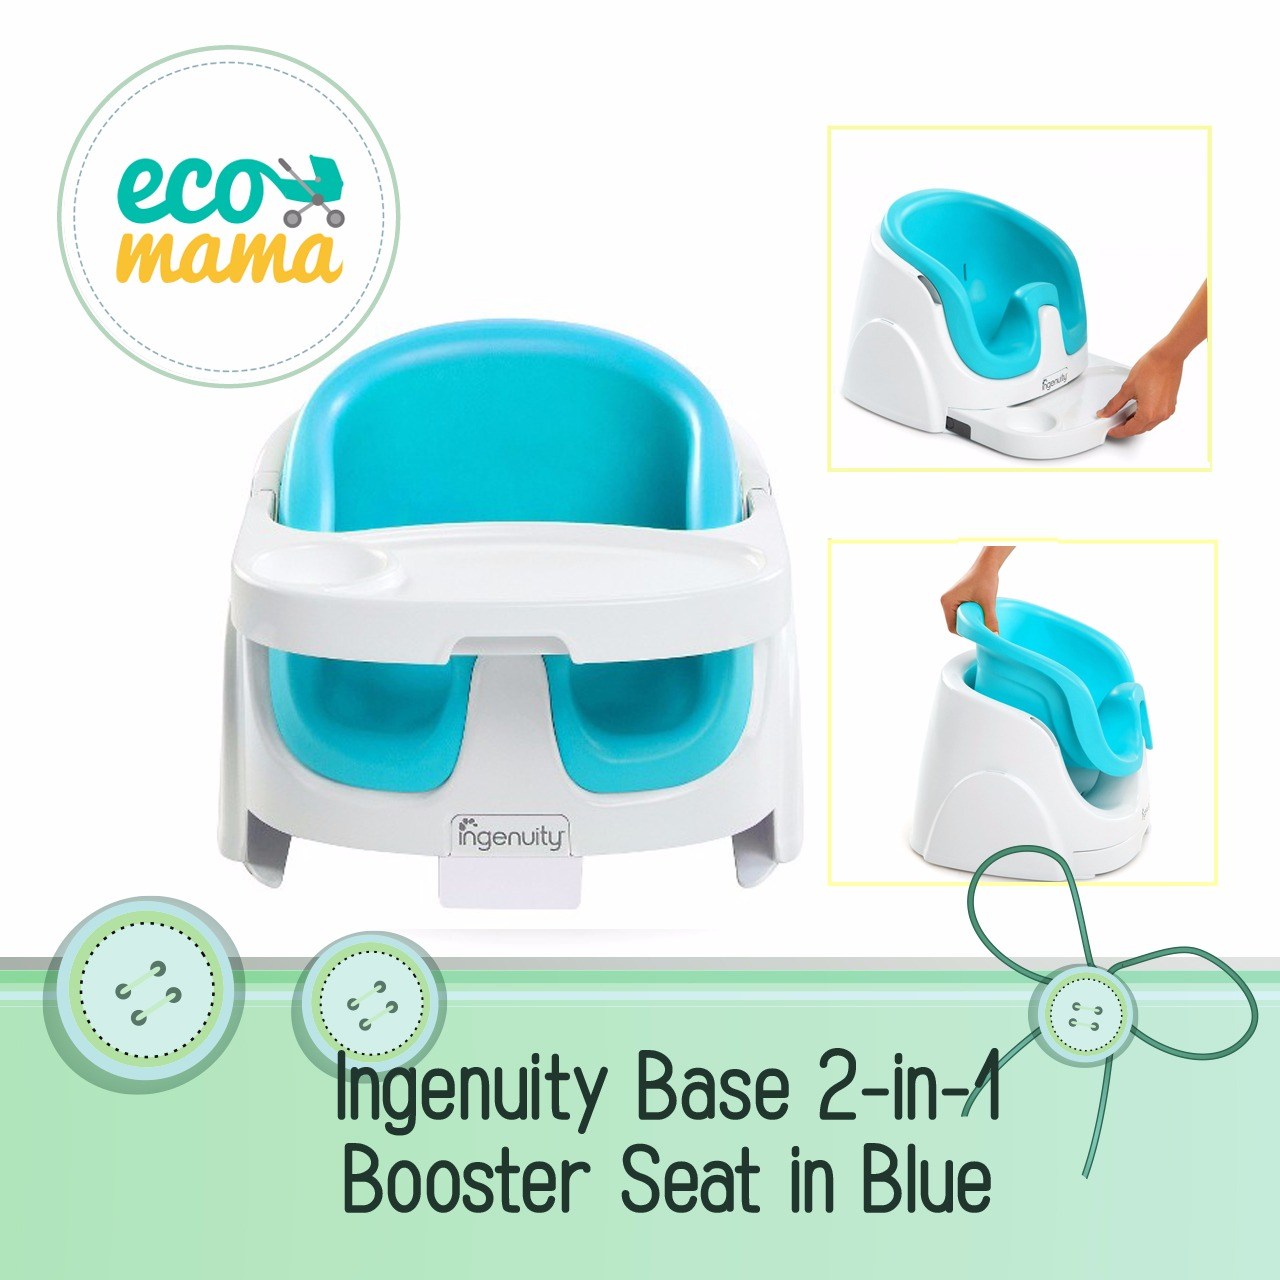 Ingenuity Baby Base 2 in 1 in Blue